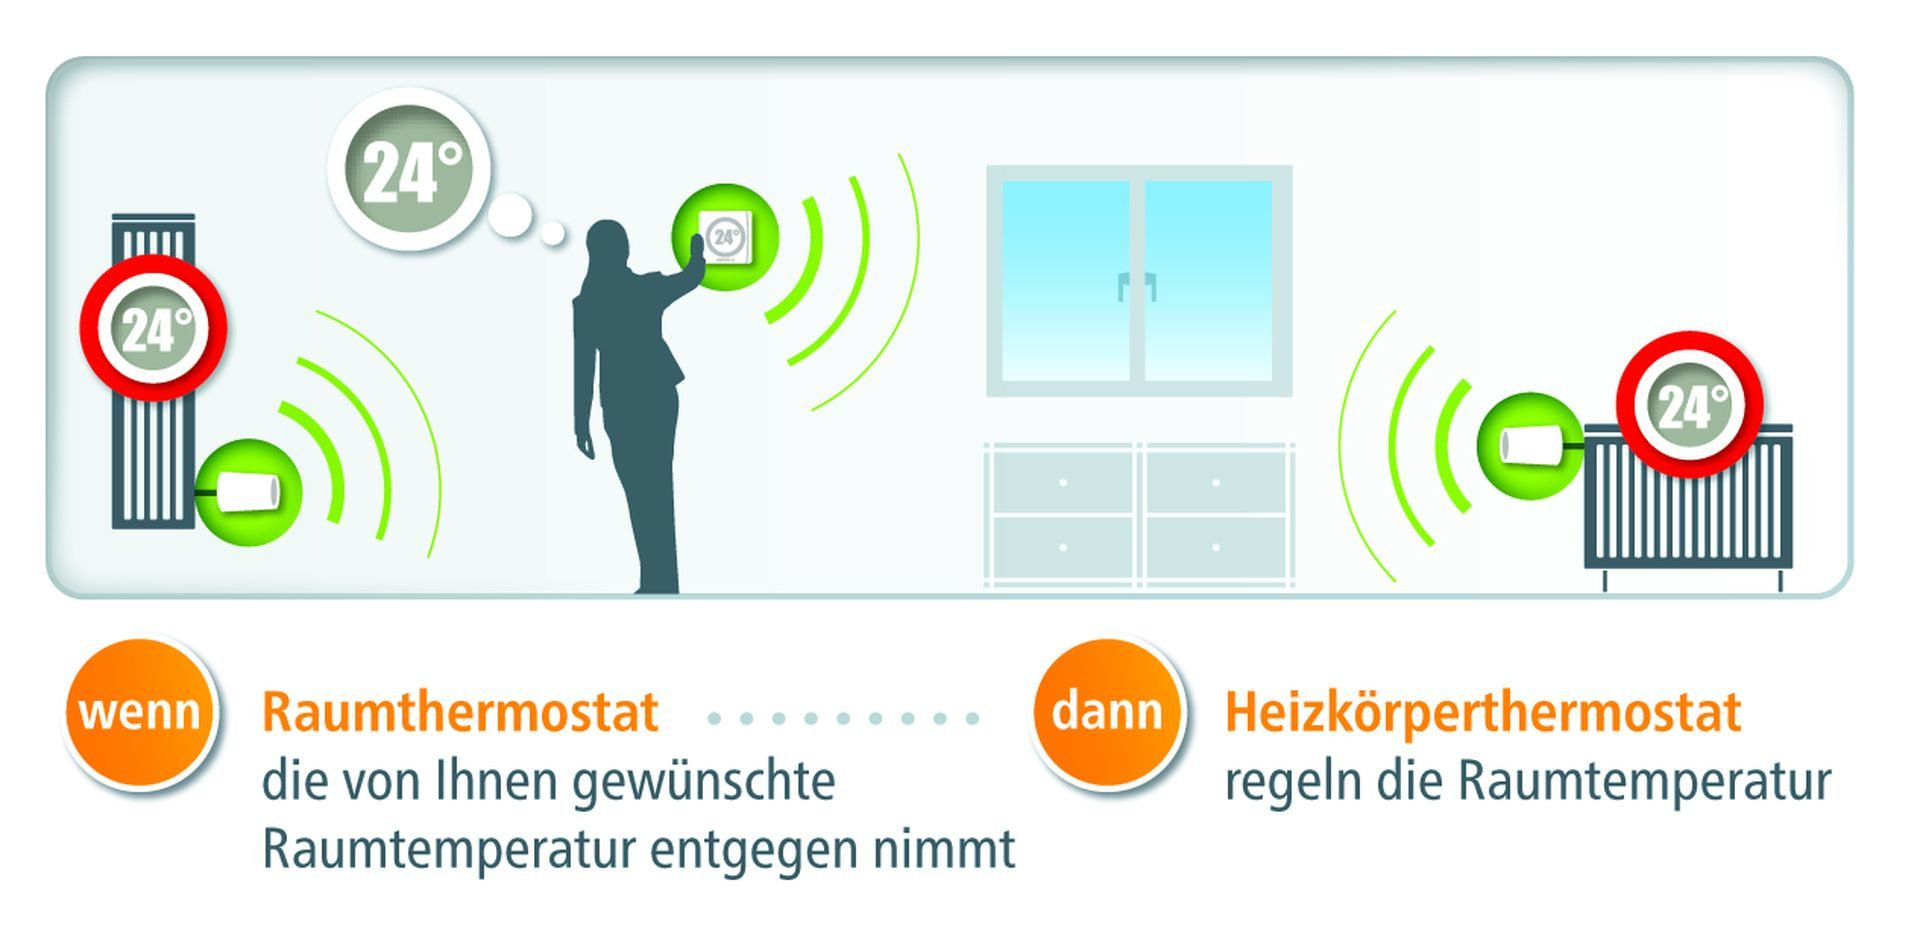 devolo-Home-Control-Room-Thermostat-scenario